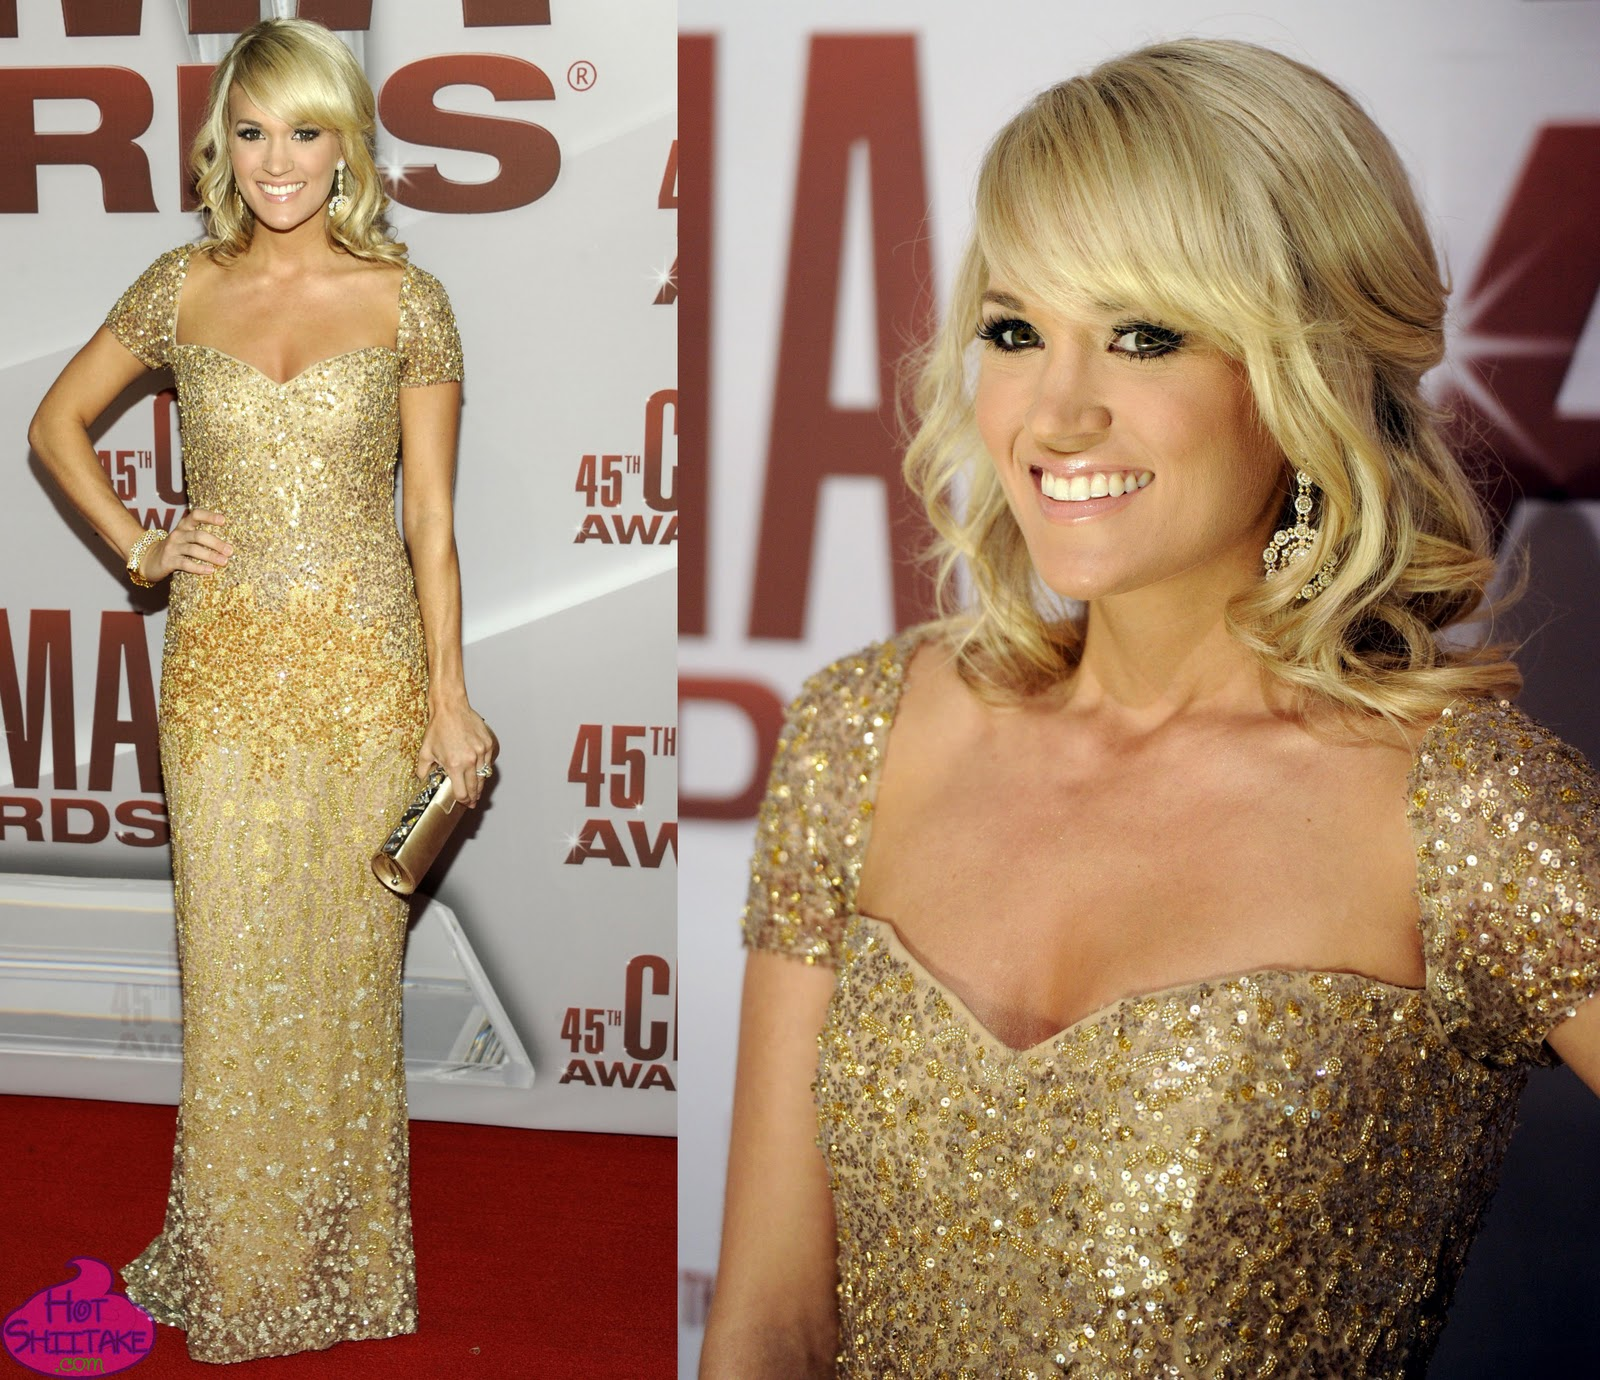 Carrie Underwood CMT Awards 2011